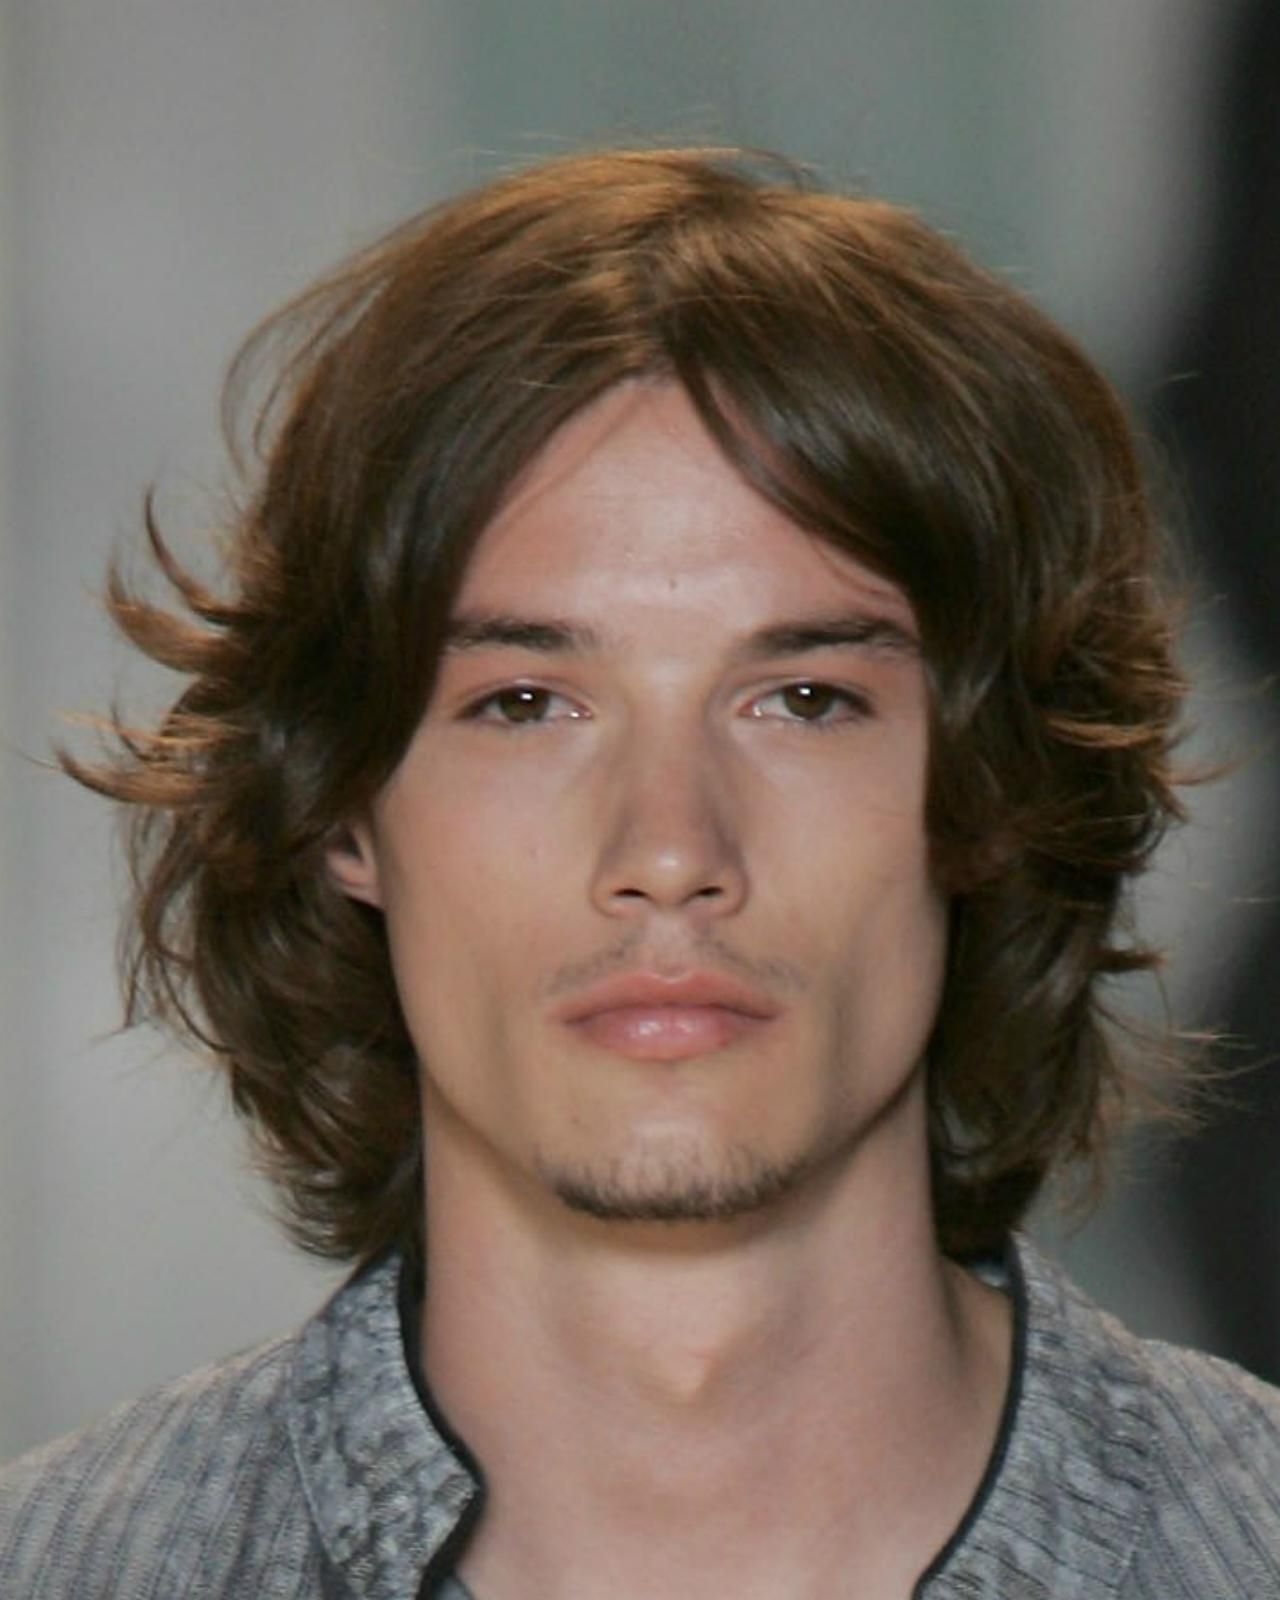 Recent Straight Shaggy Locks Long Hairstyles With Regard To Long Hairstyles For Men Picture Gallery (View 15 of 20)